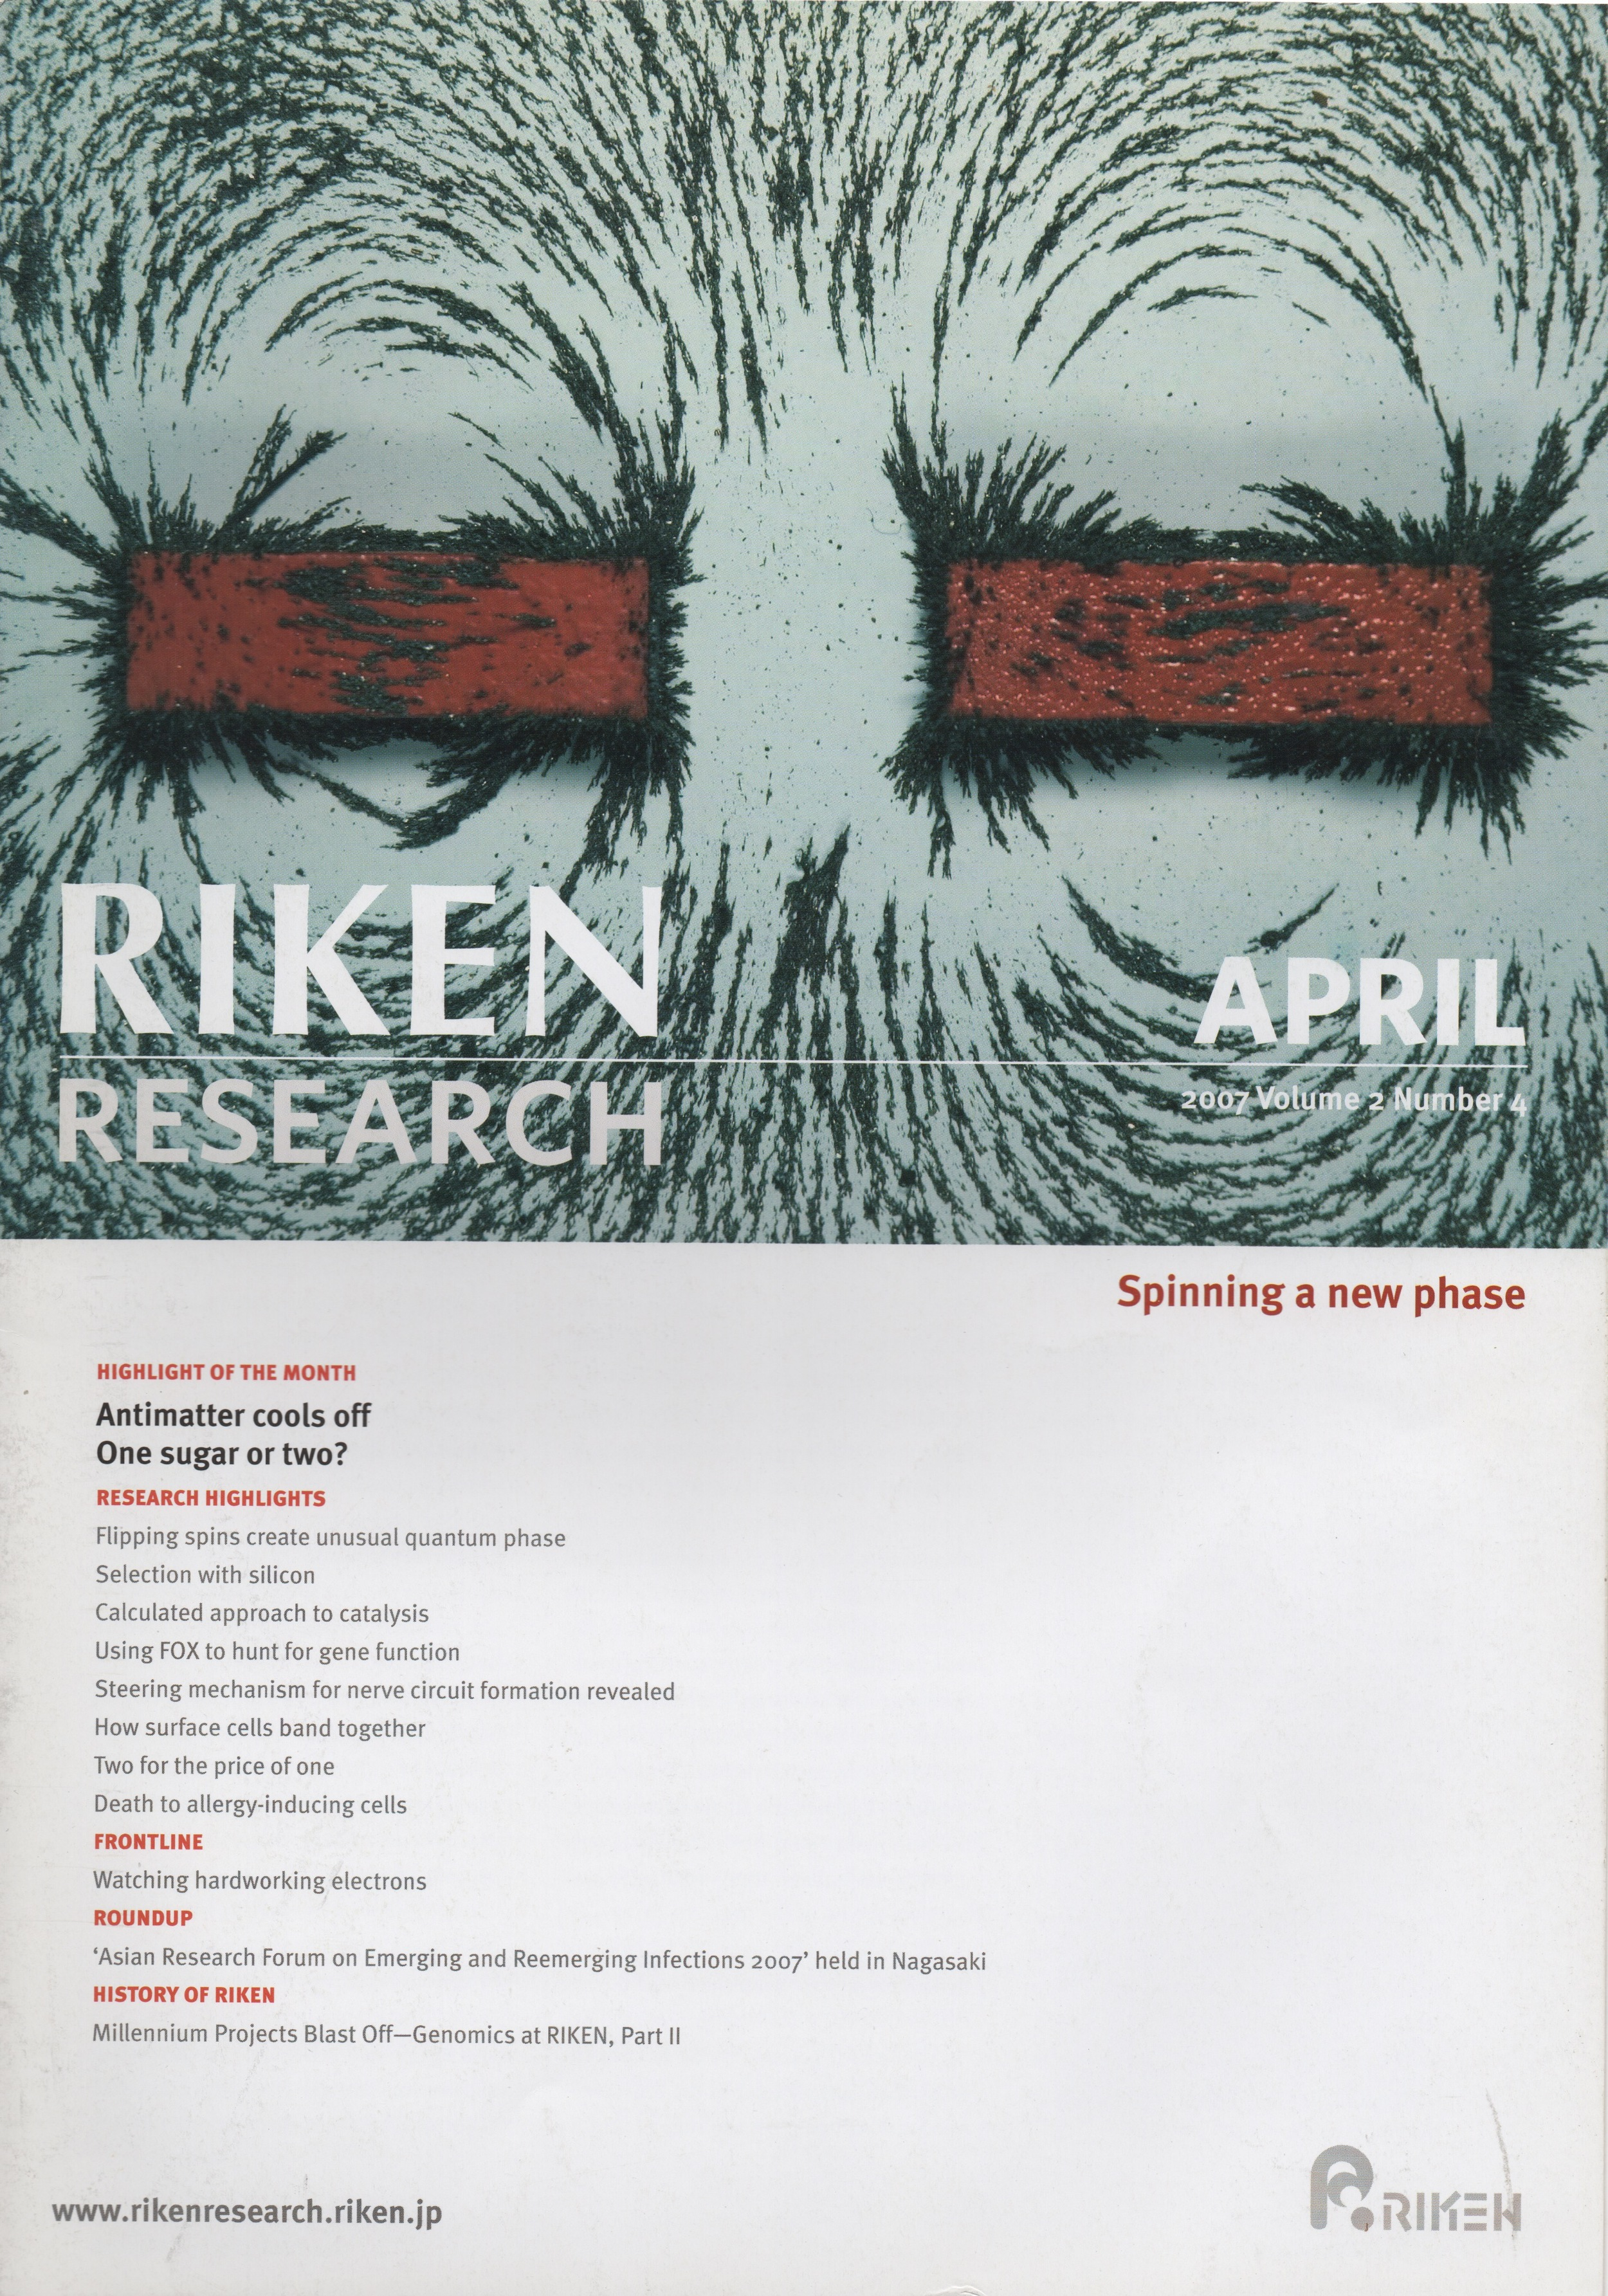 RIKEN Research 2007-4.jpeg